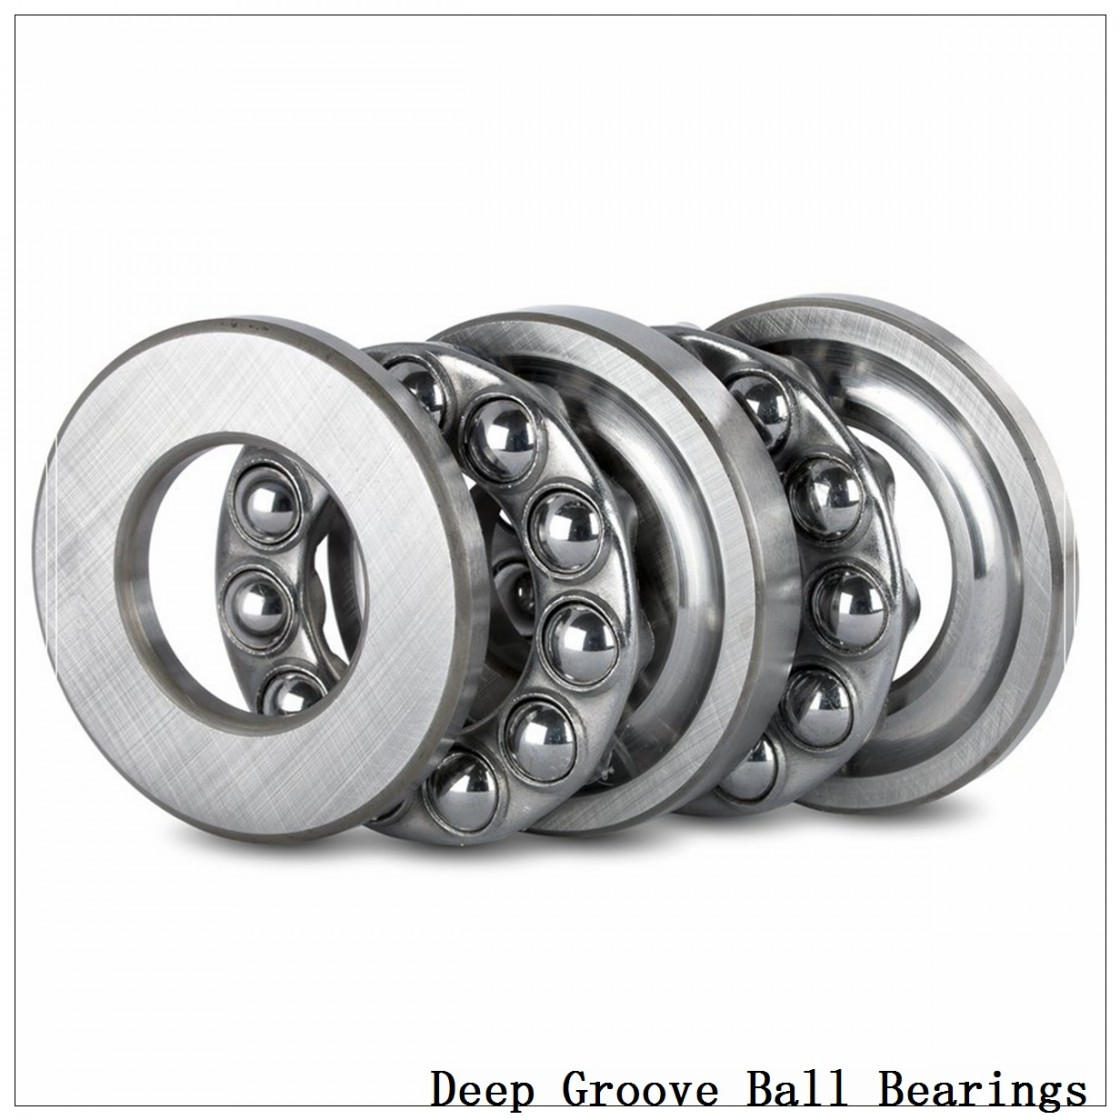 6356 Deep groove ball bearings